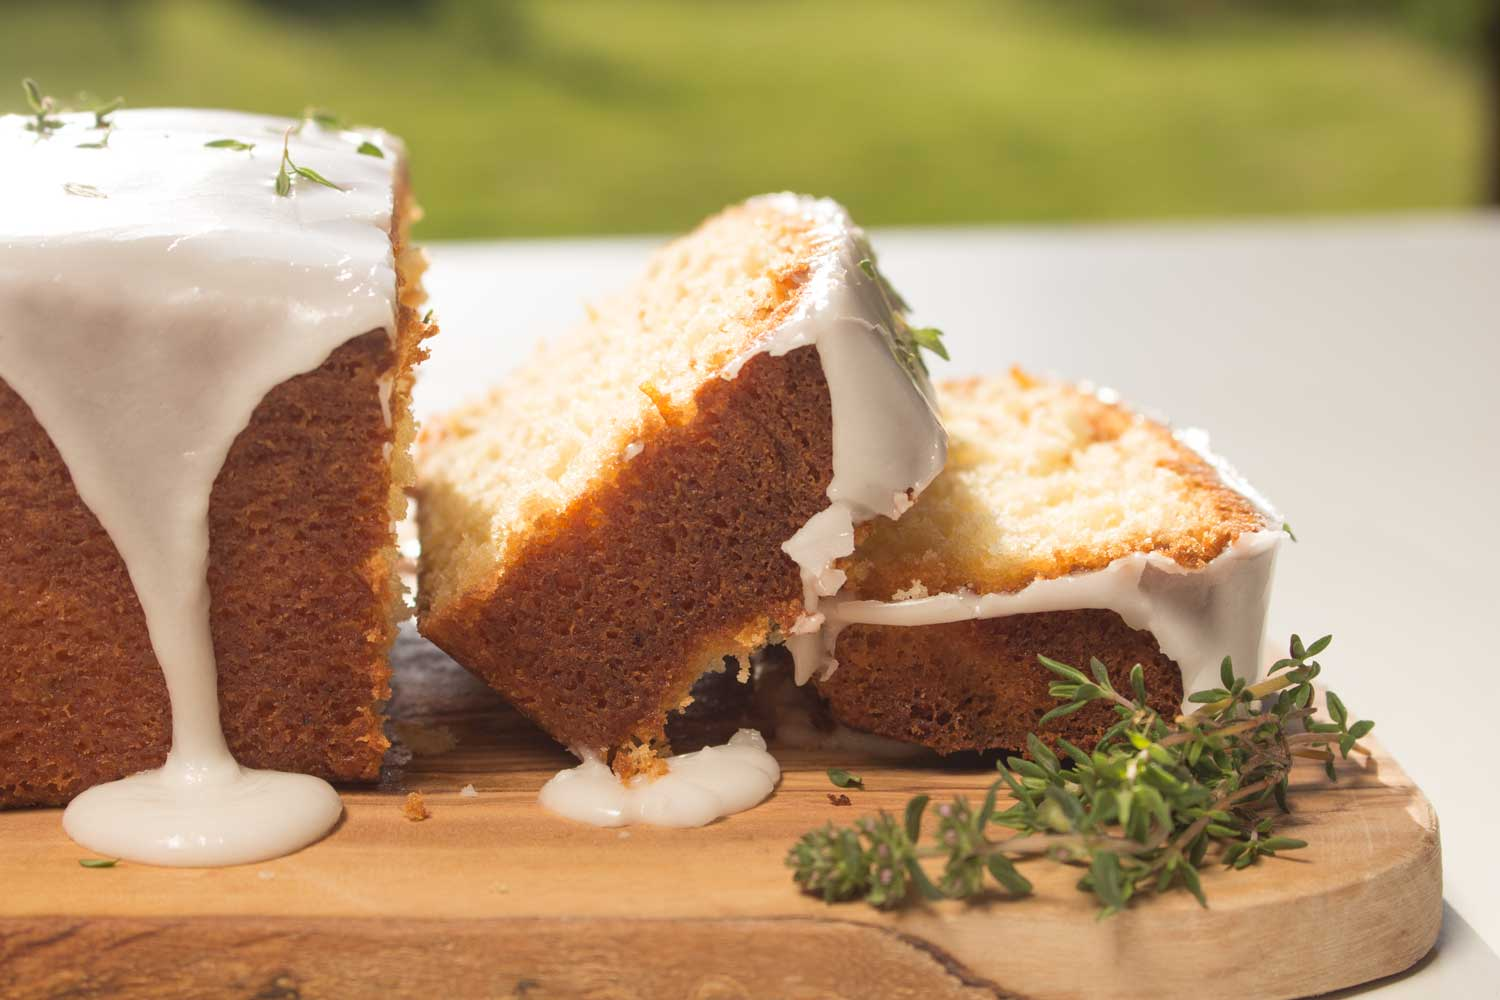 Lemon-and-Thyme-Cake-Sliced-RoseHartSweets